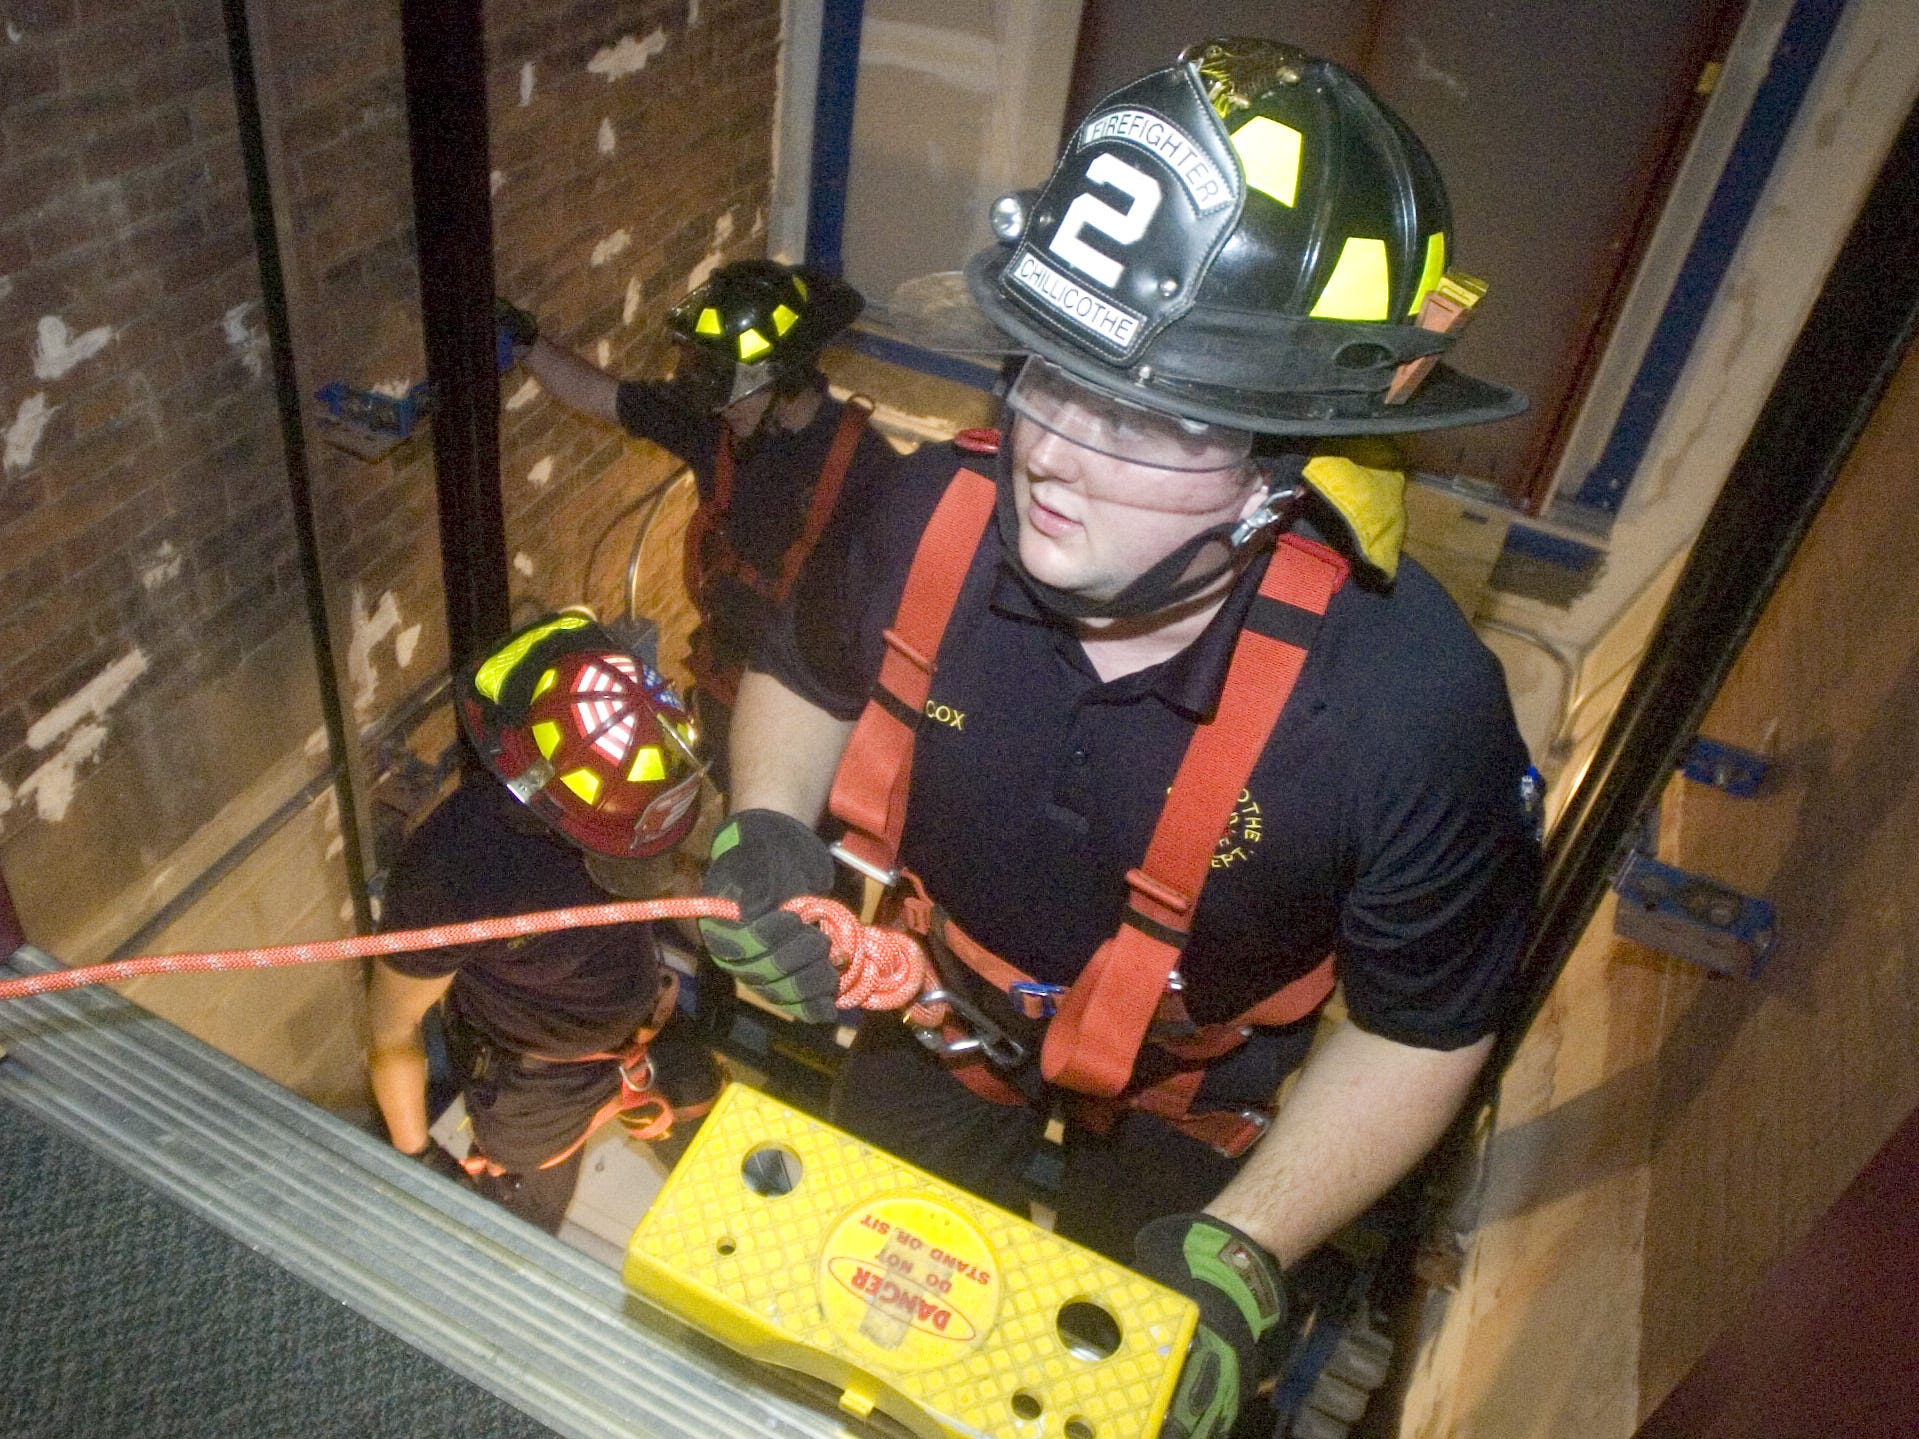 Bryon Cox enters the elevator shaft during a training exercise for the Chillicothe Fire Department in 2010 at Trinity United Methodist Church.